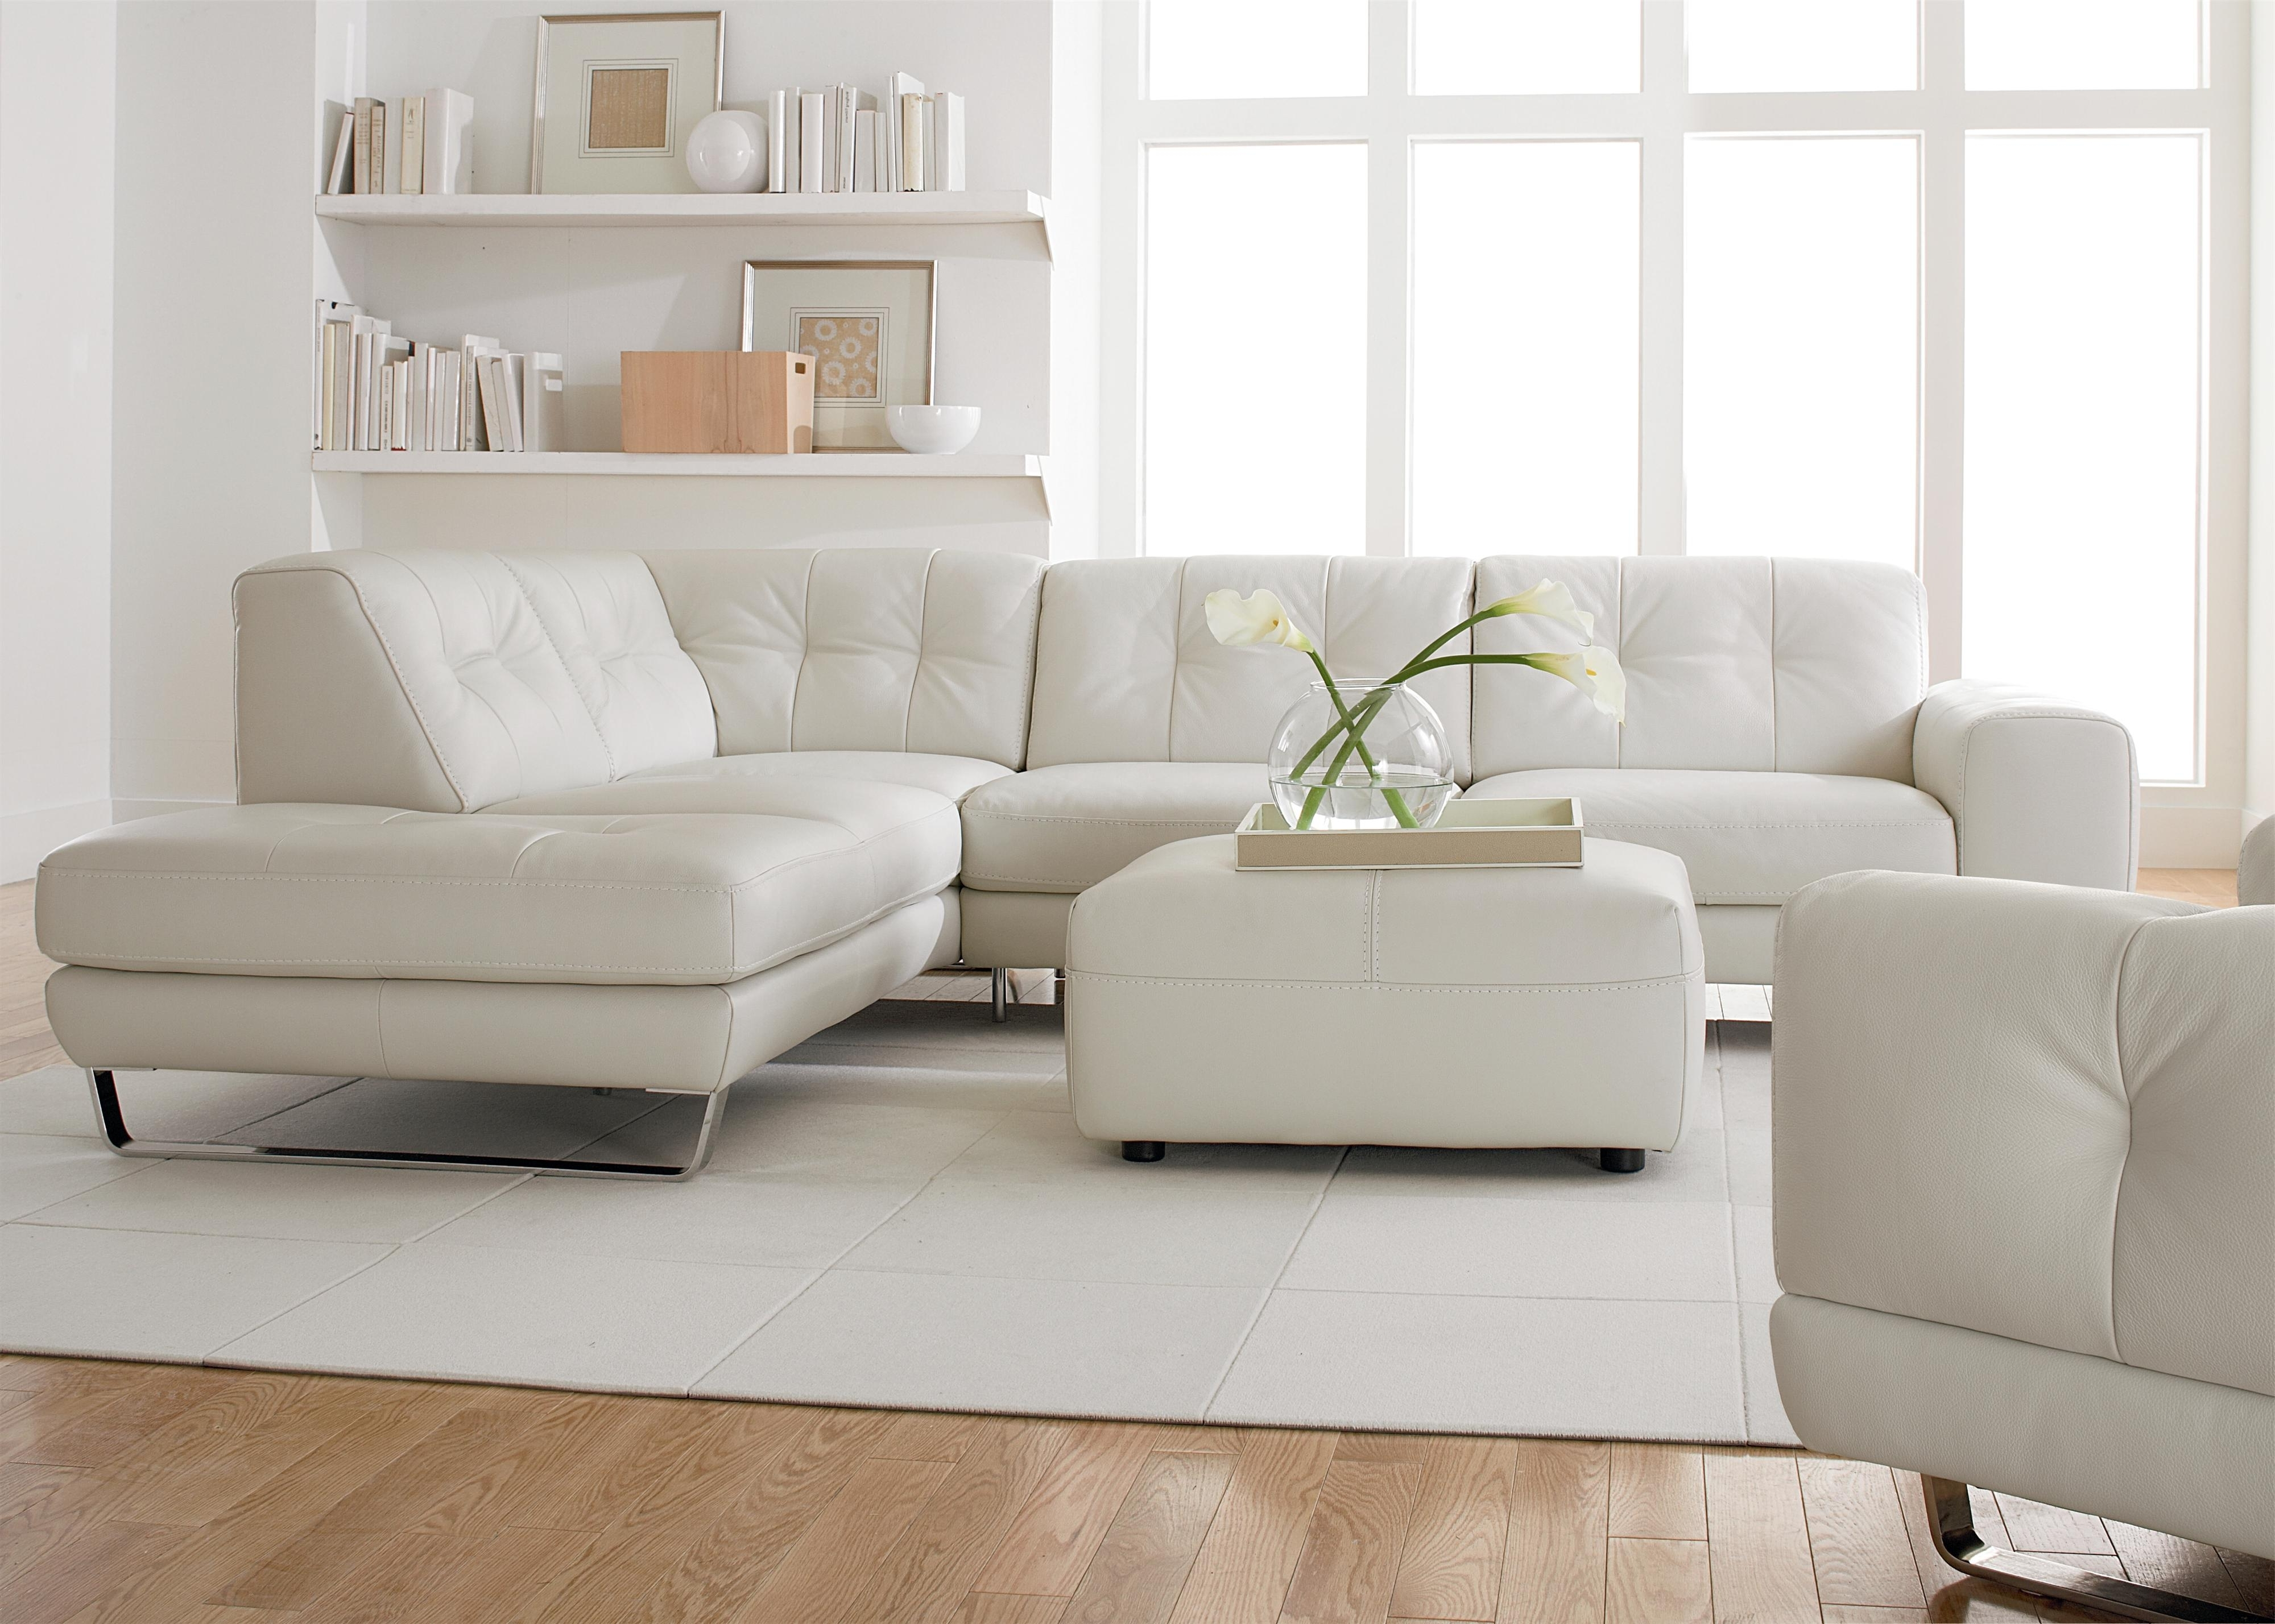 Trendy Tufted Sectional Sofas With Chaise Throughout Simple Modern Minimalist Living Room Decoration With White Leather (View 18 of 20)